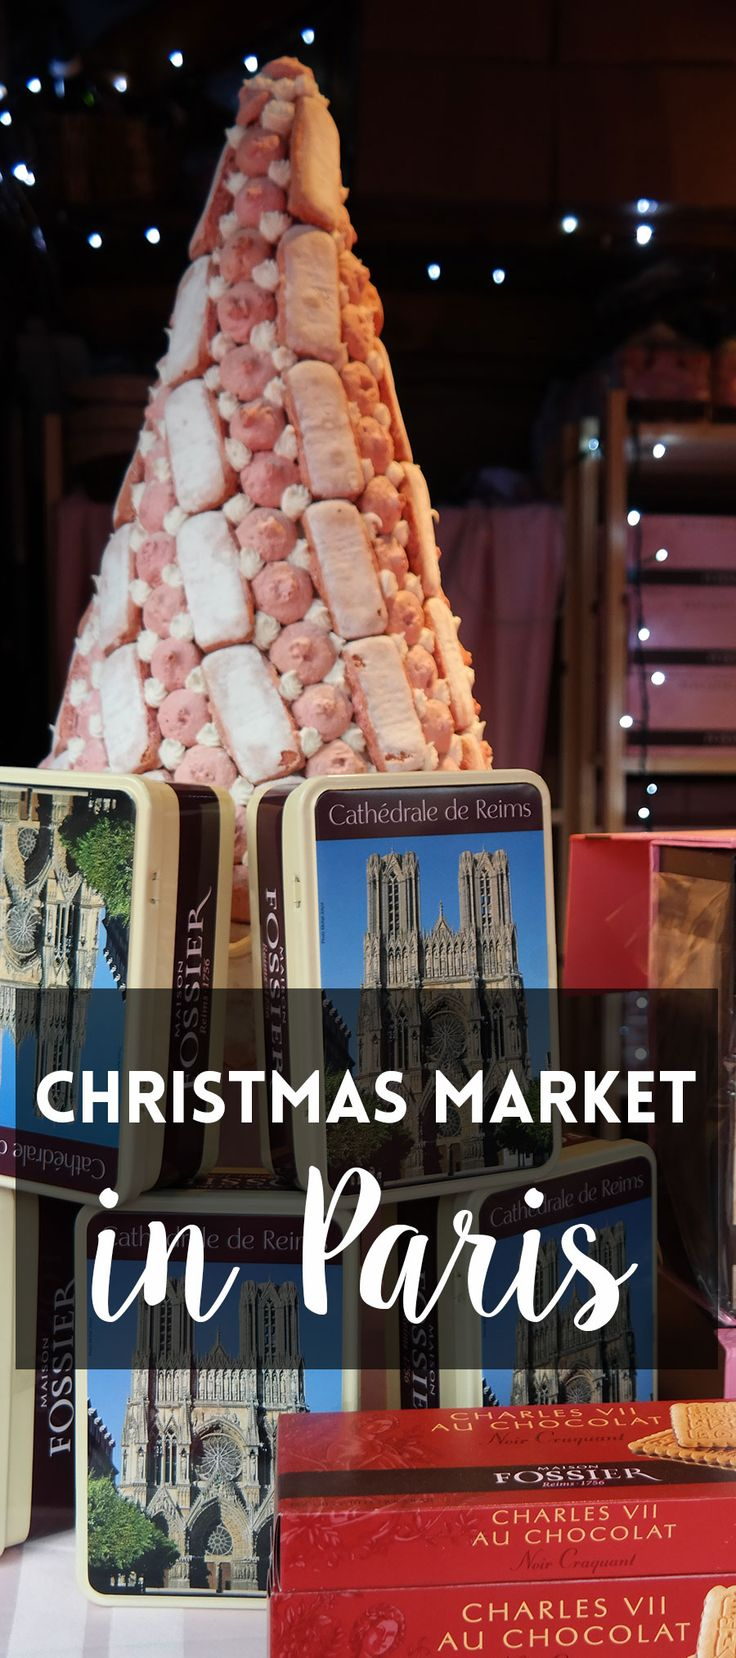 Take a wonderful food tour at the Christmas market at Champs-Élysées in Paris.